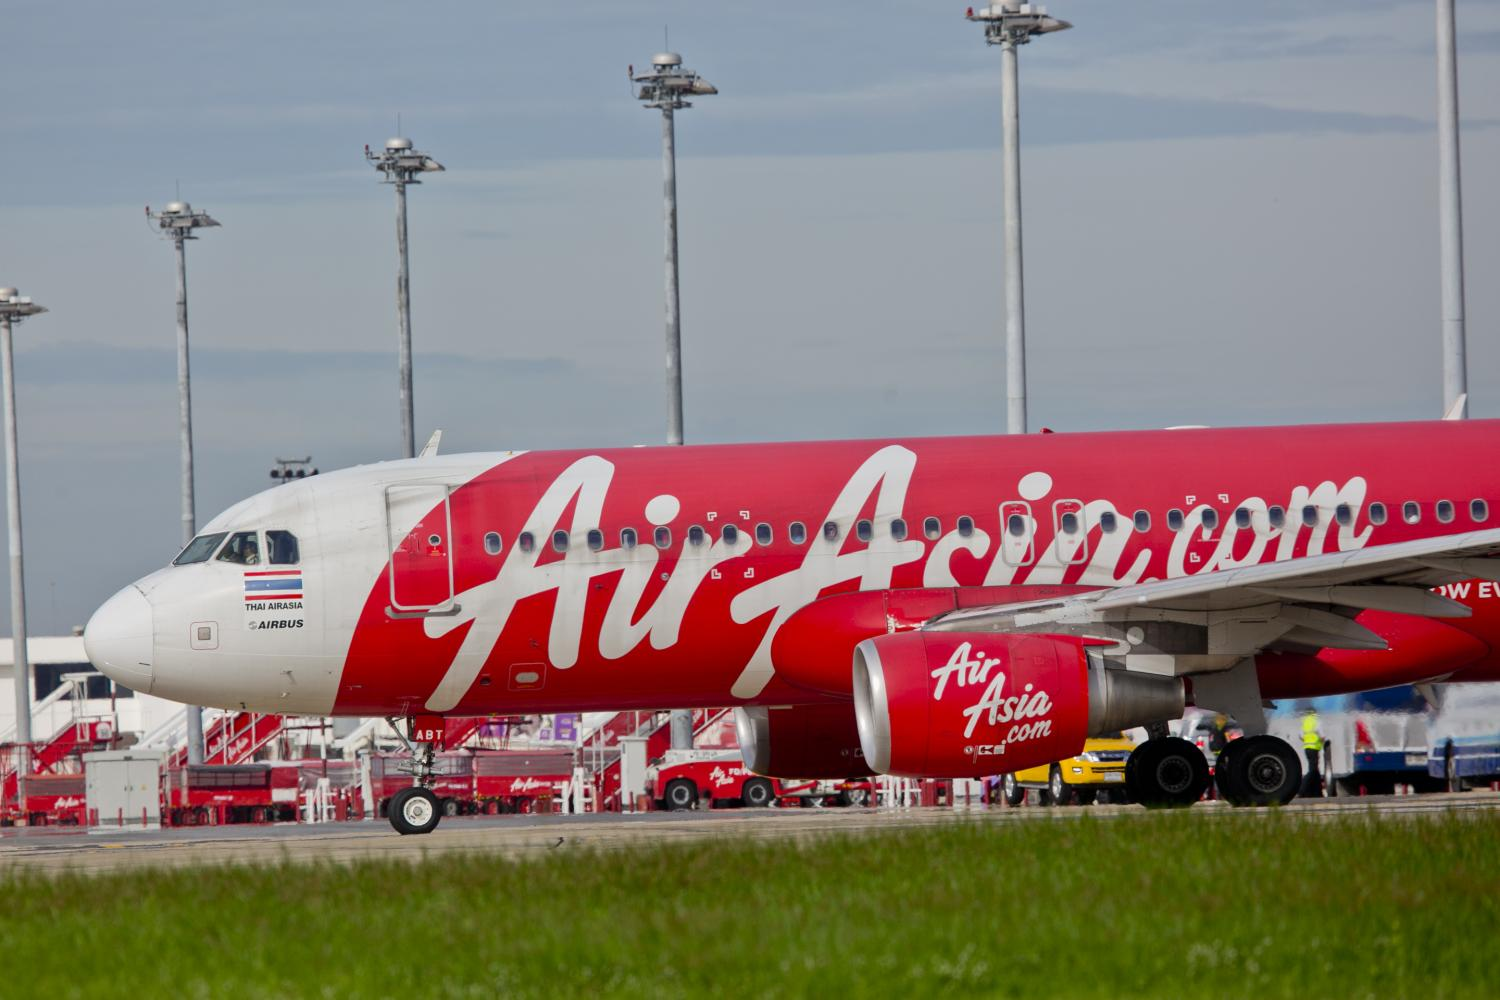 An A320 aircraft of AirAsia is seen at Don Mueang airport, the hub of the airline.(Photo by Krit Phromsakla Na Sakolnakorn)